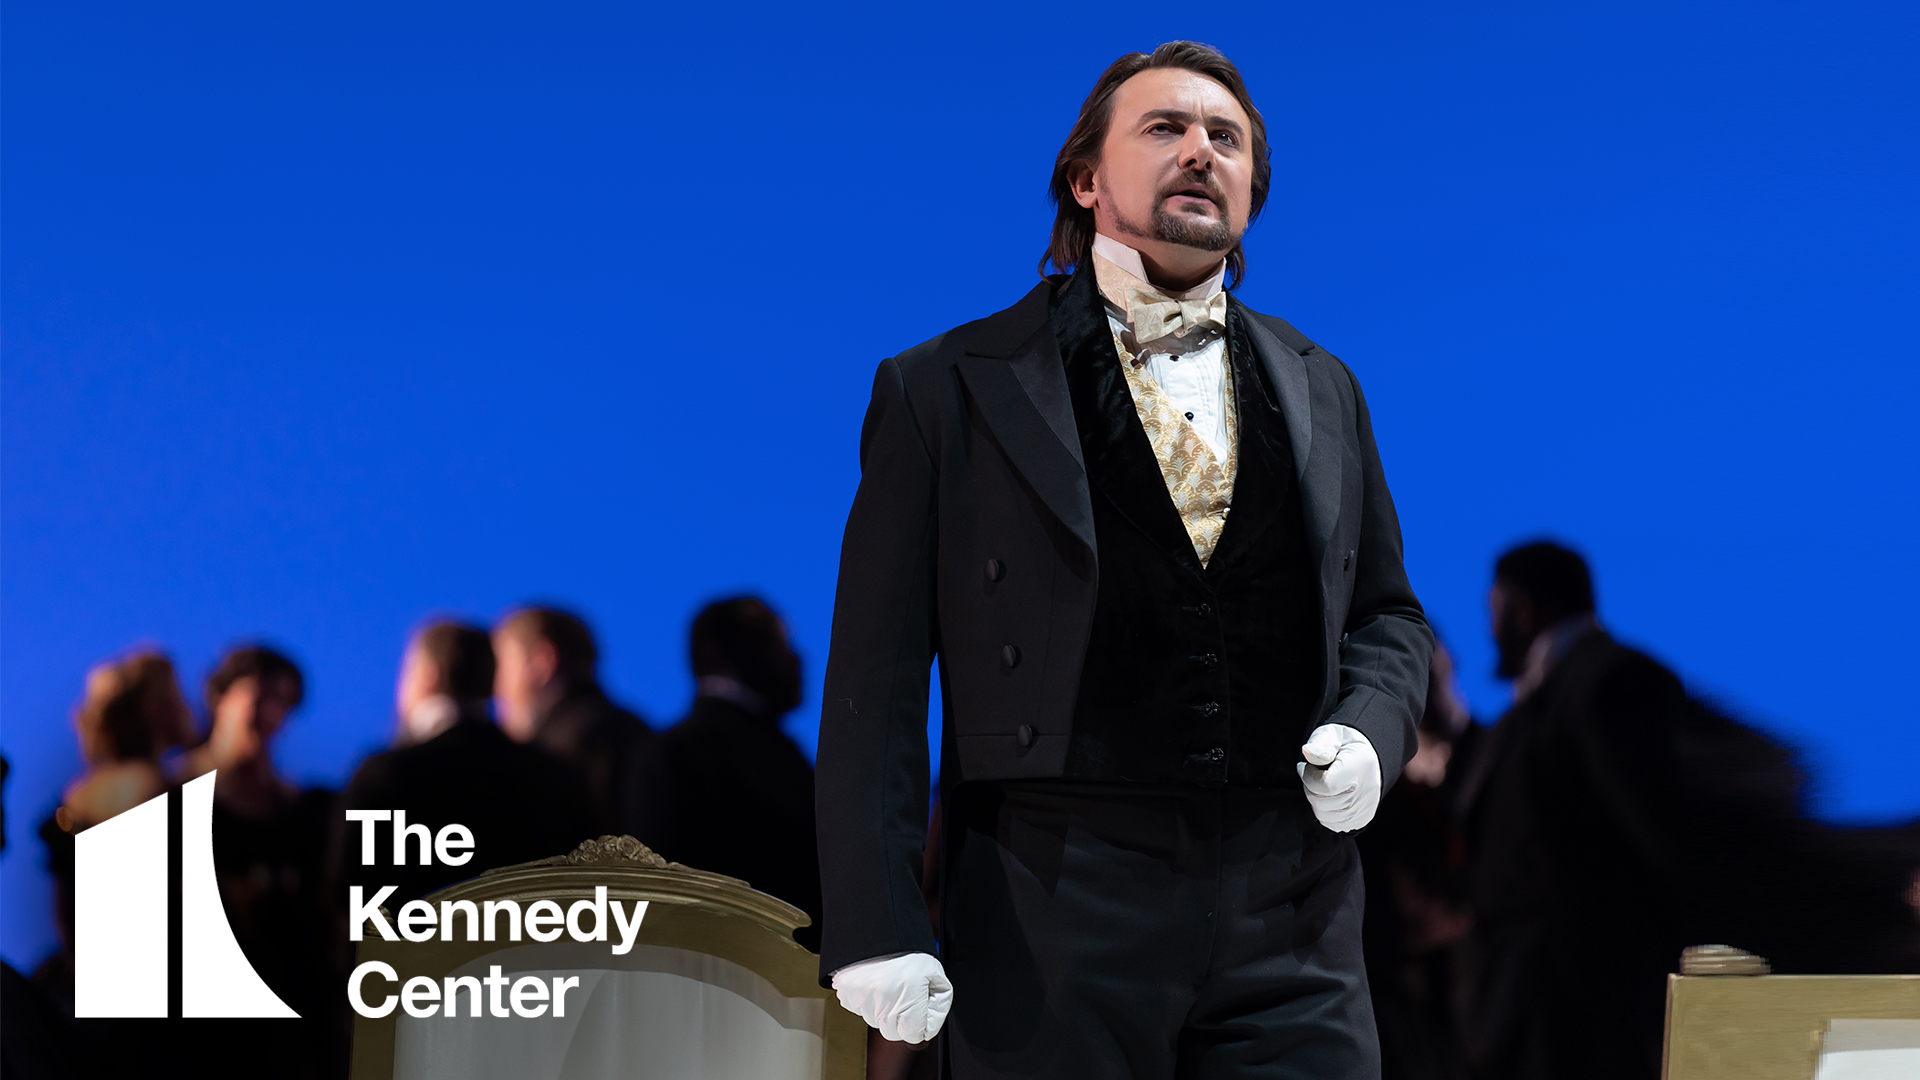 Igor Golovatenko's US debut as WNO's Eugene Onegin | The Kennedy Center